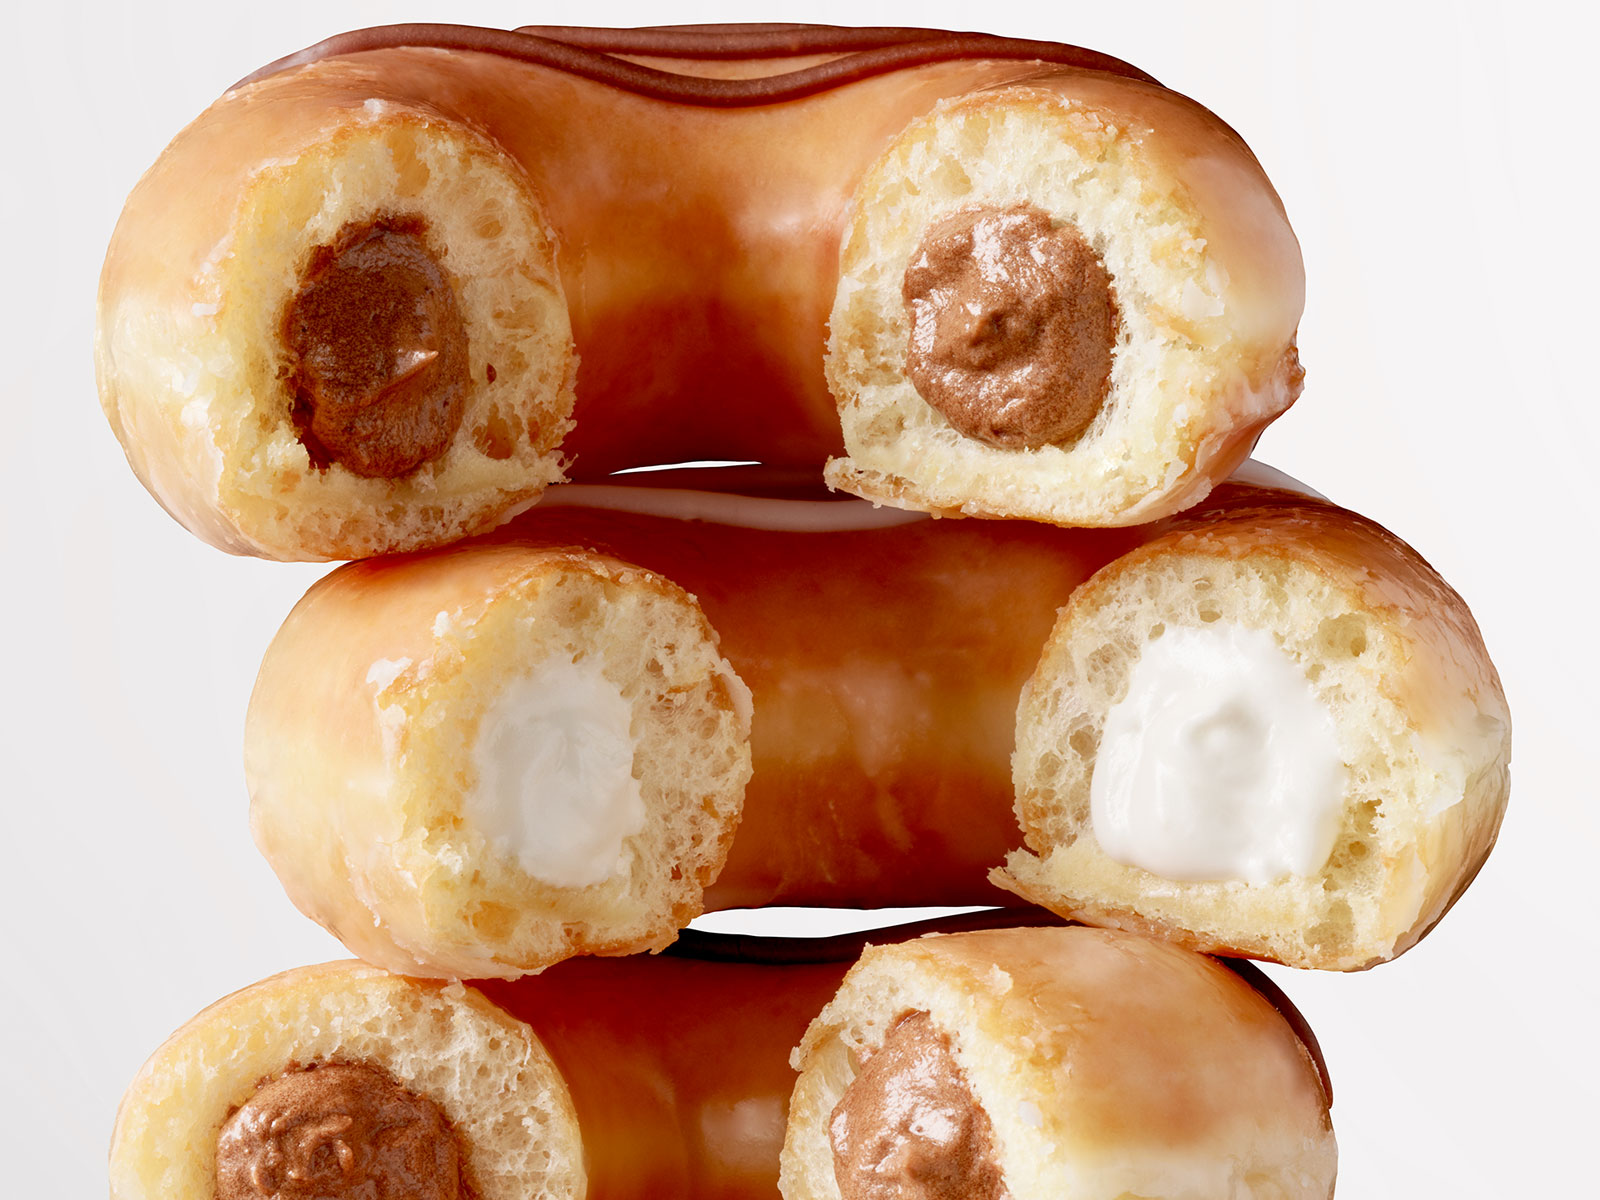 Krispy Kreme Adds Filled Original Glazed Doughnuts to the Menu—Permanently